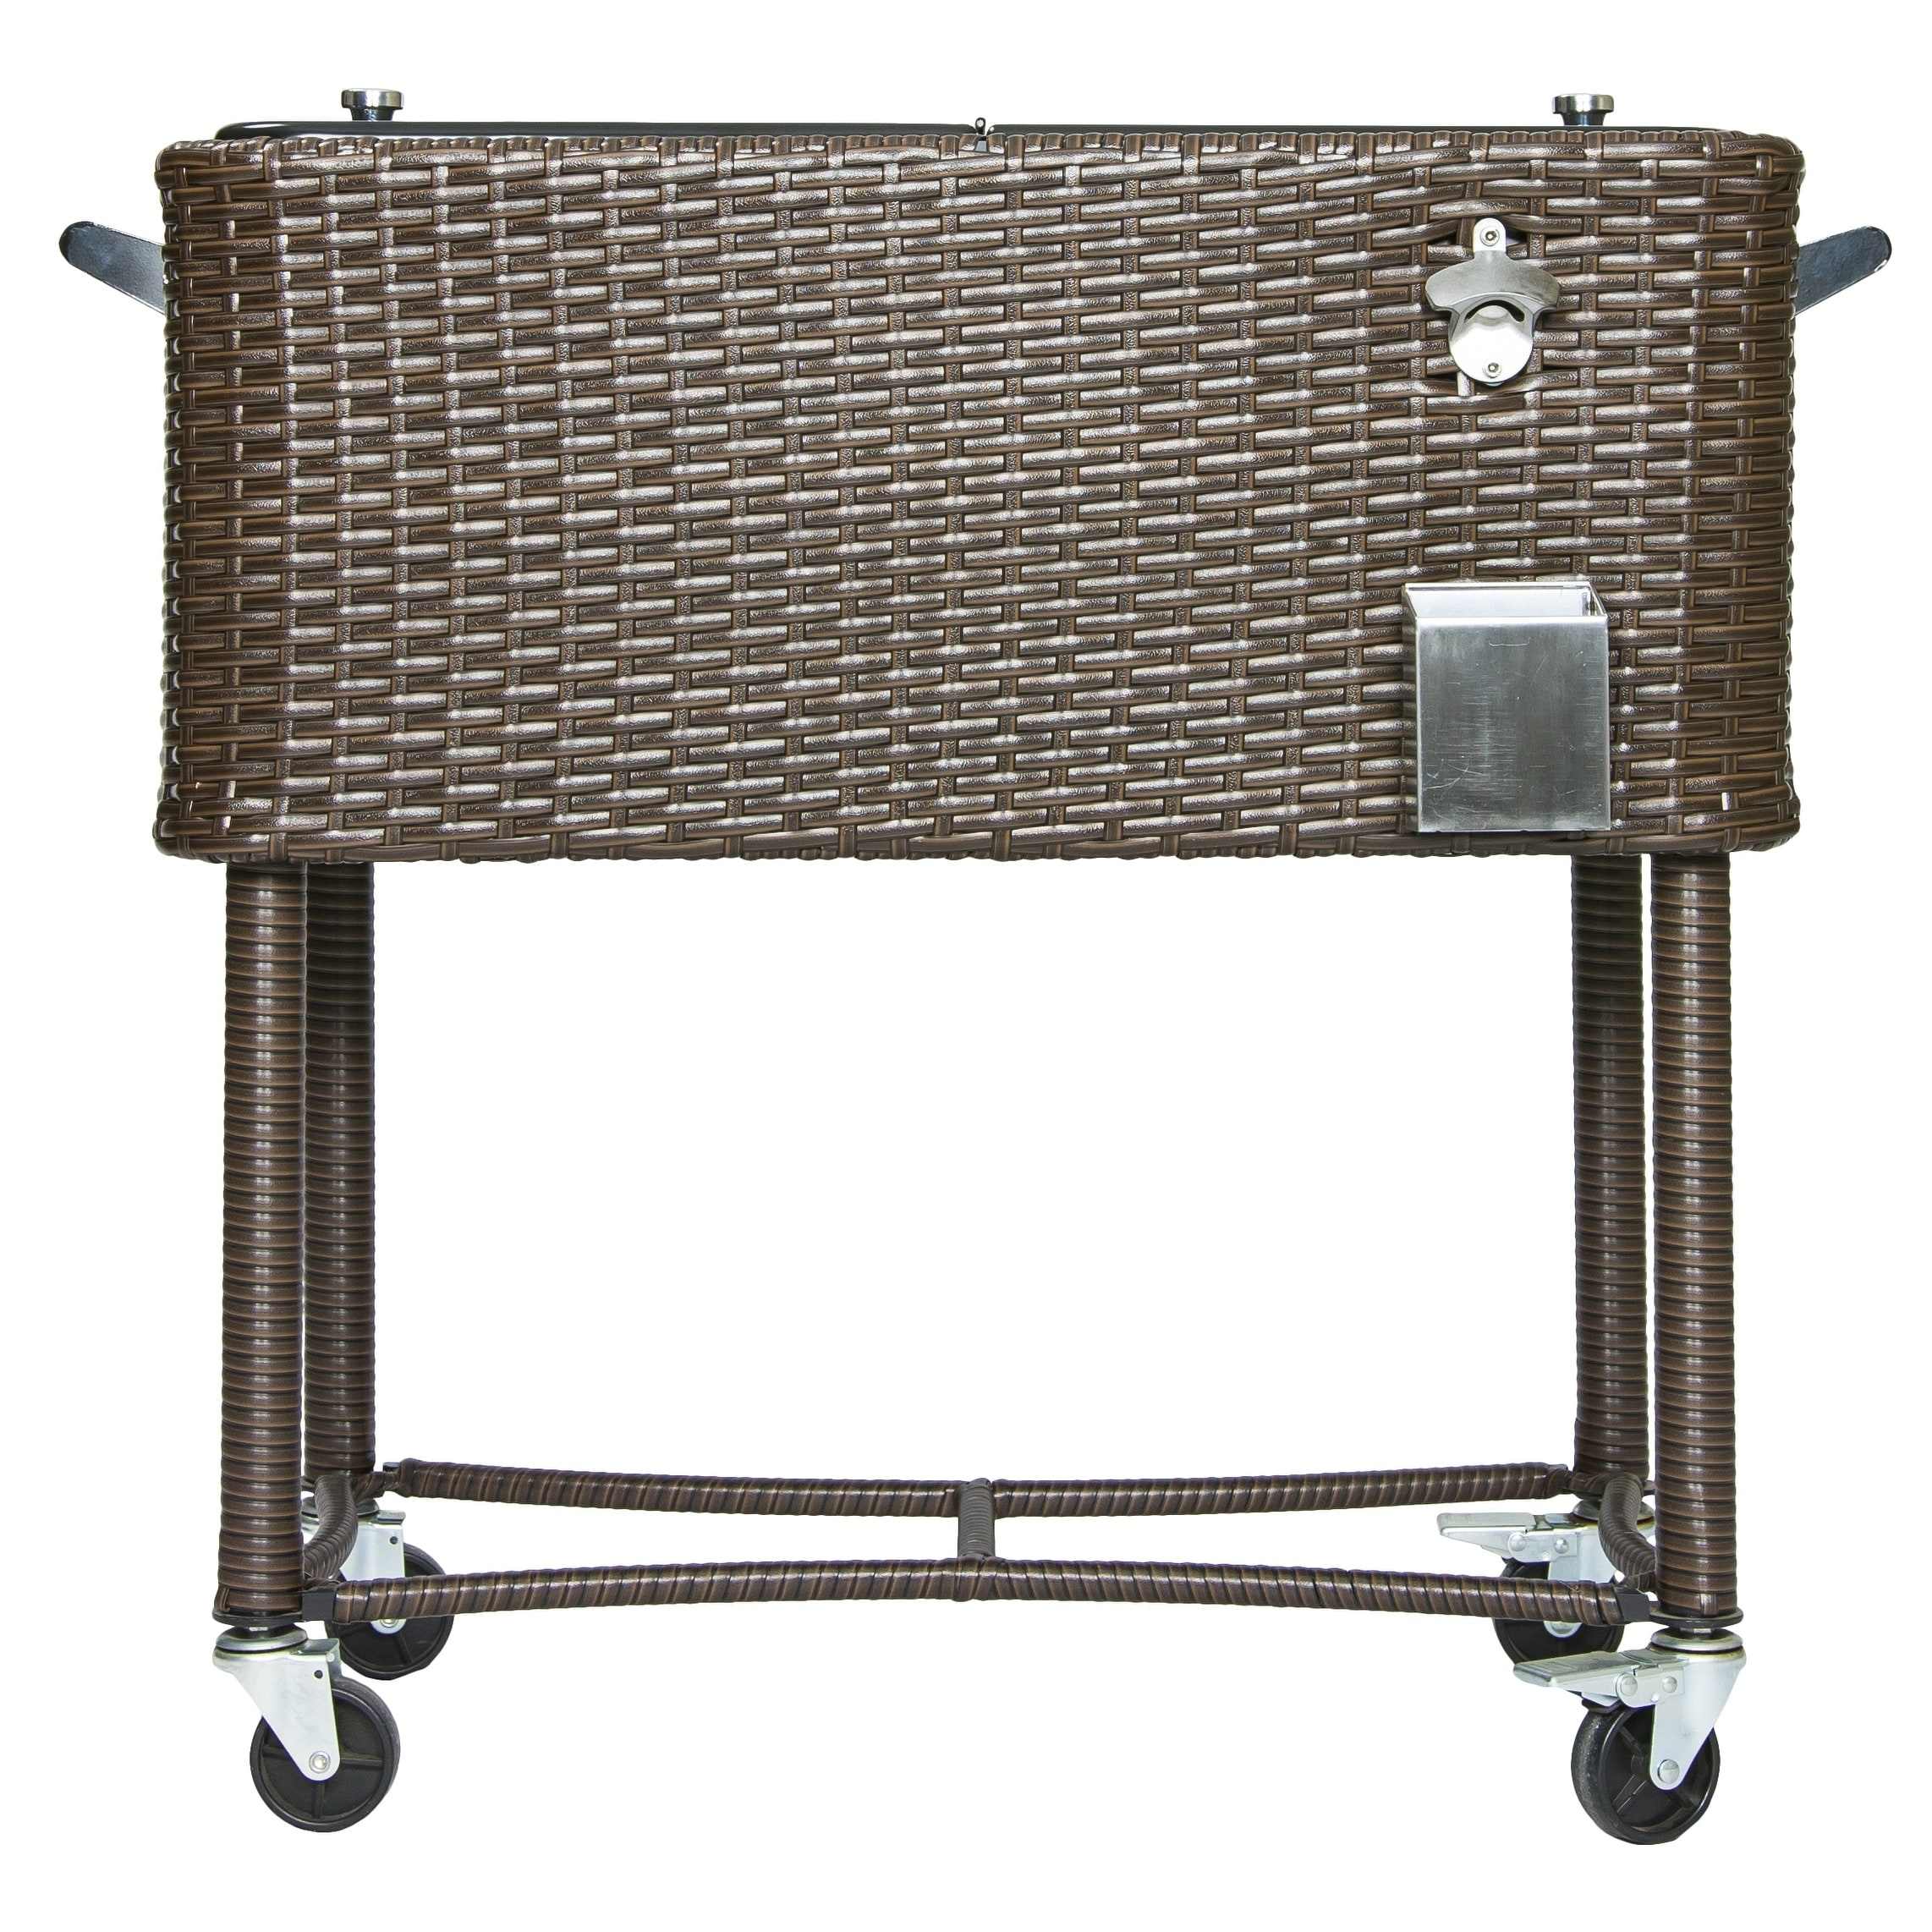 Permasteel 80 qt. Wicker Patio Rolling Cooler